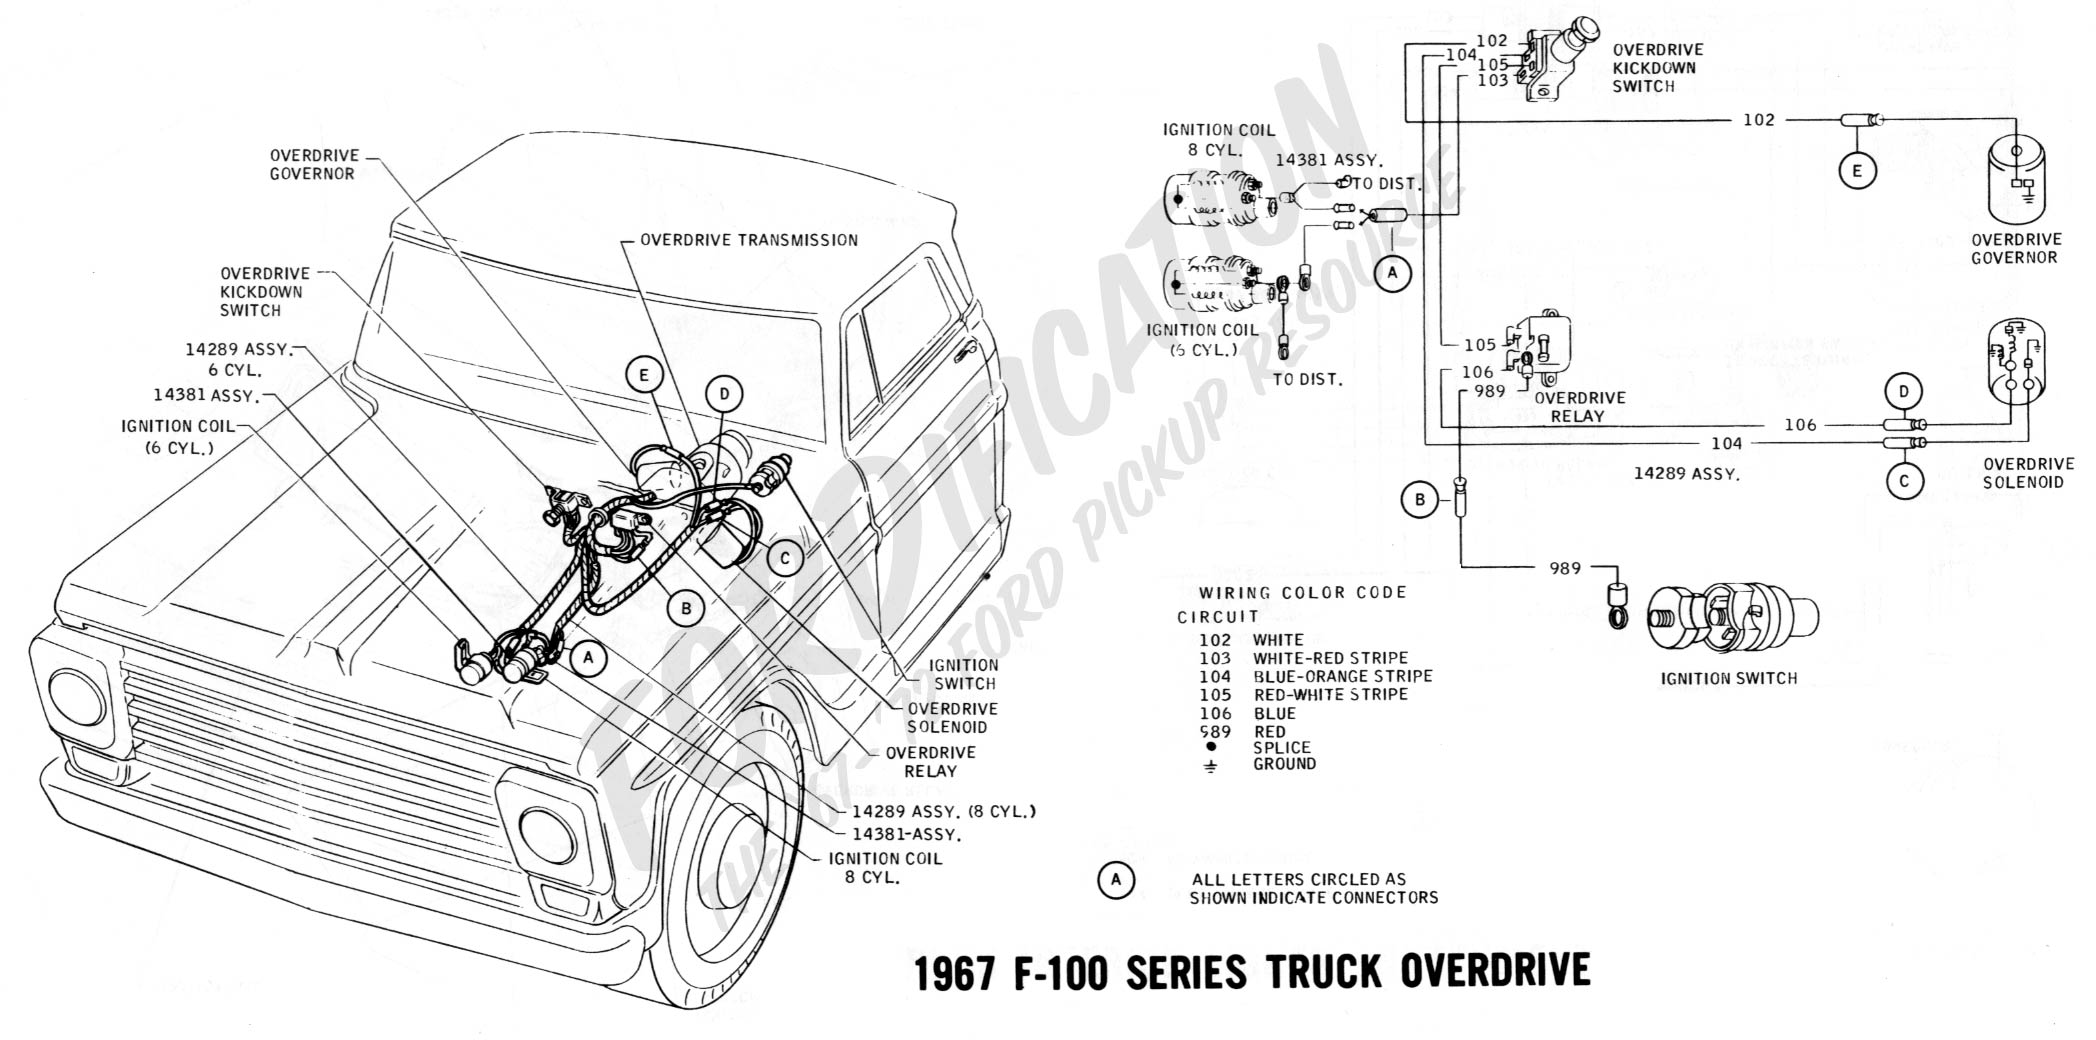 1968 F100 Fuse Box Free Wiring Diagram For You 69 Mustang Coil Ford Portal Rh 19 16 3 Kaminari Music De 1969 Location